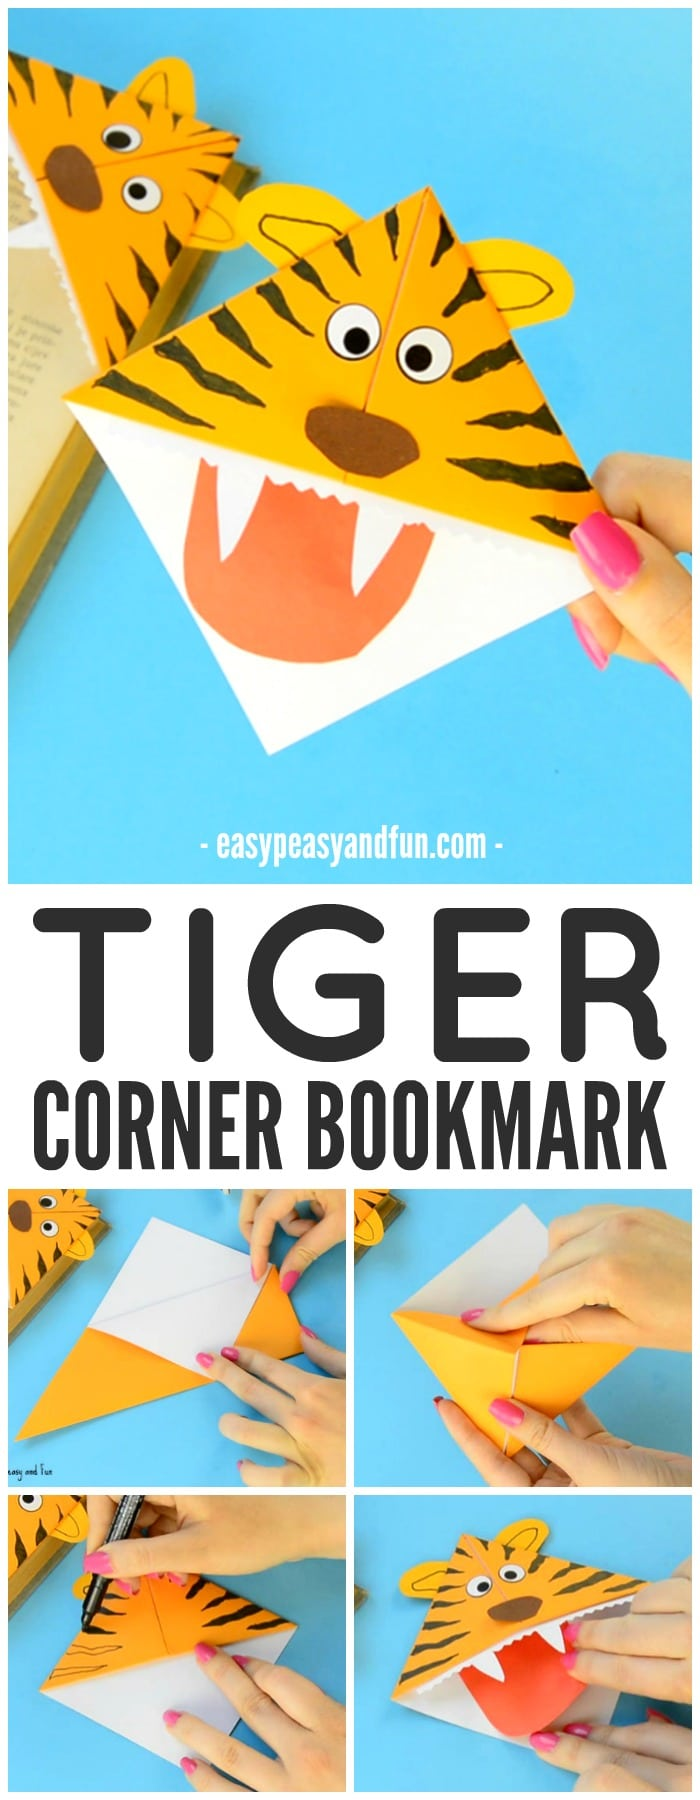 Cute Tiger Corner Bookmarks Craft for Kids